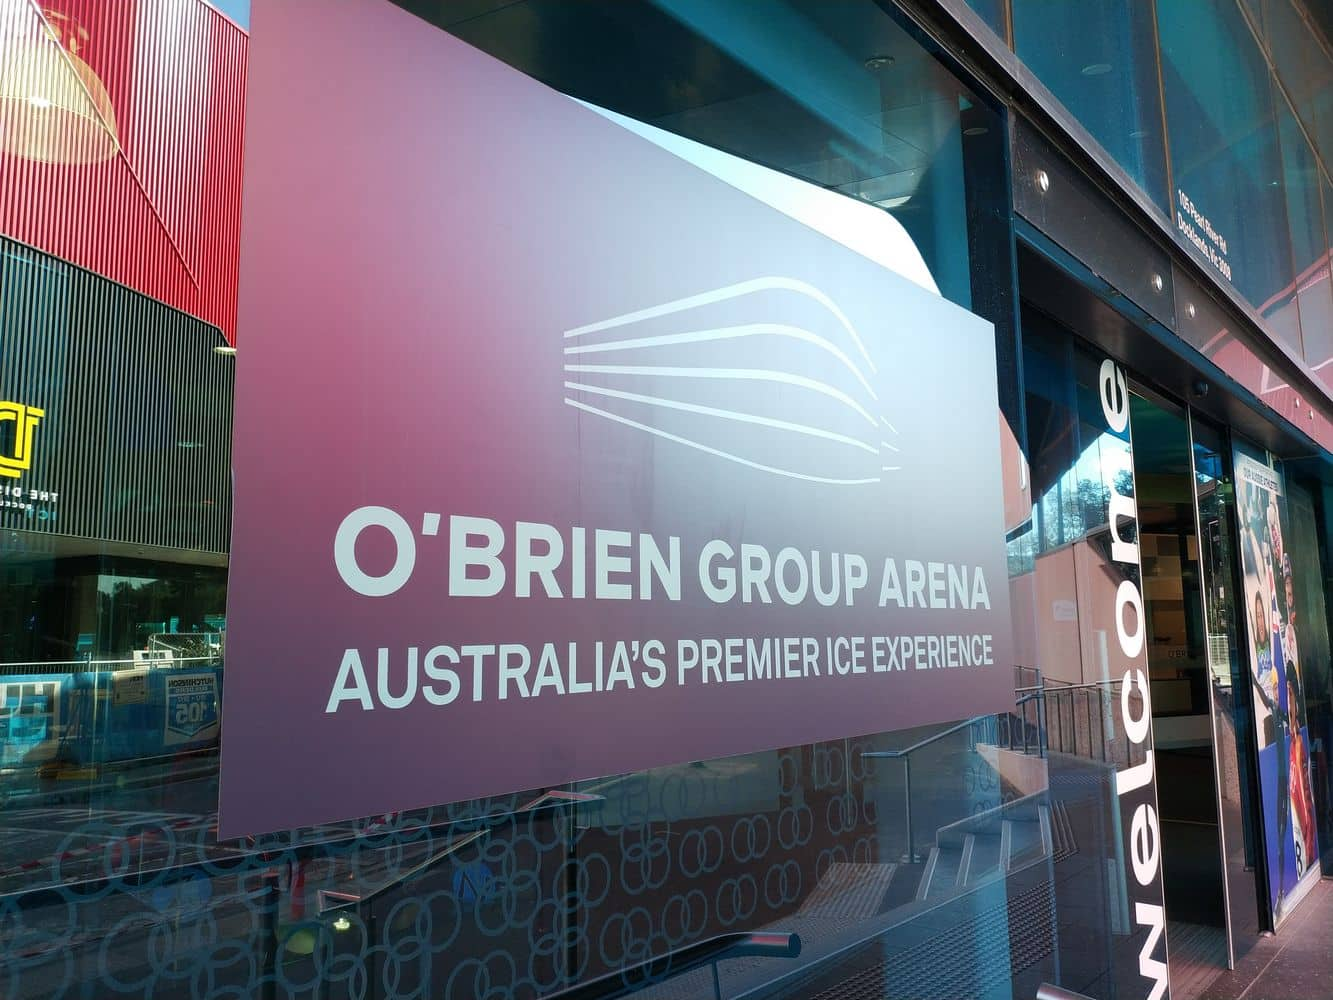 O'Brien Group Arena 19